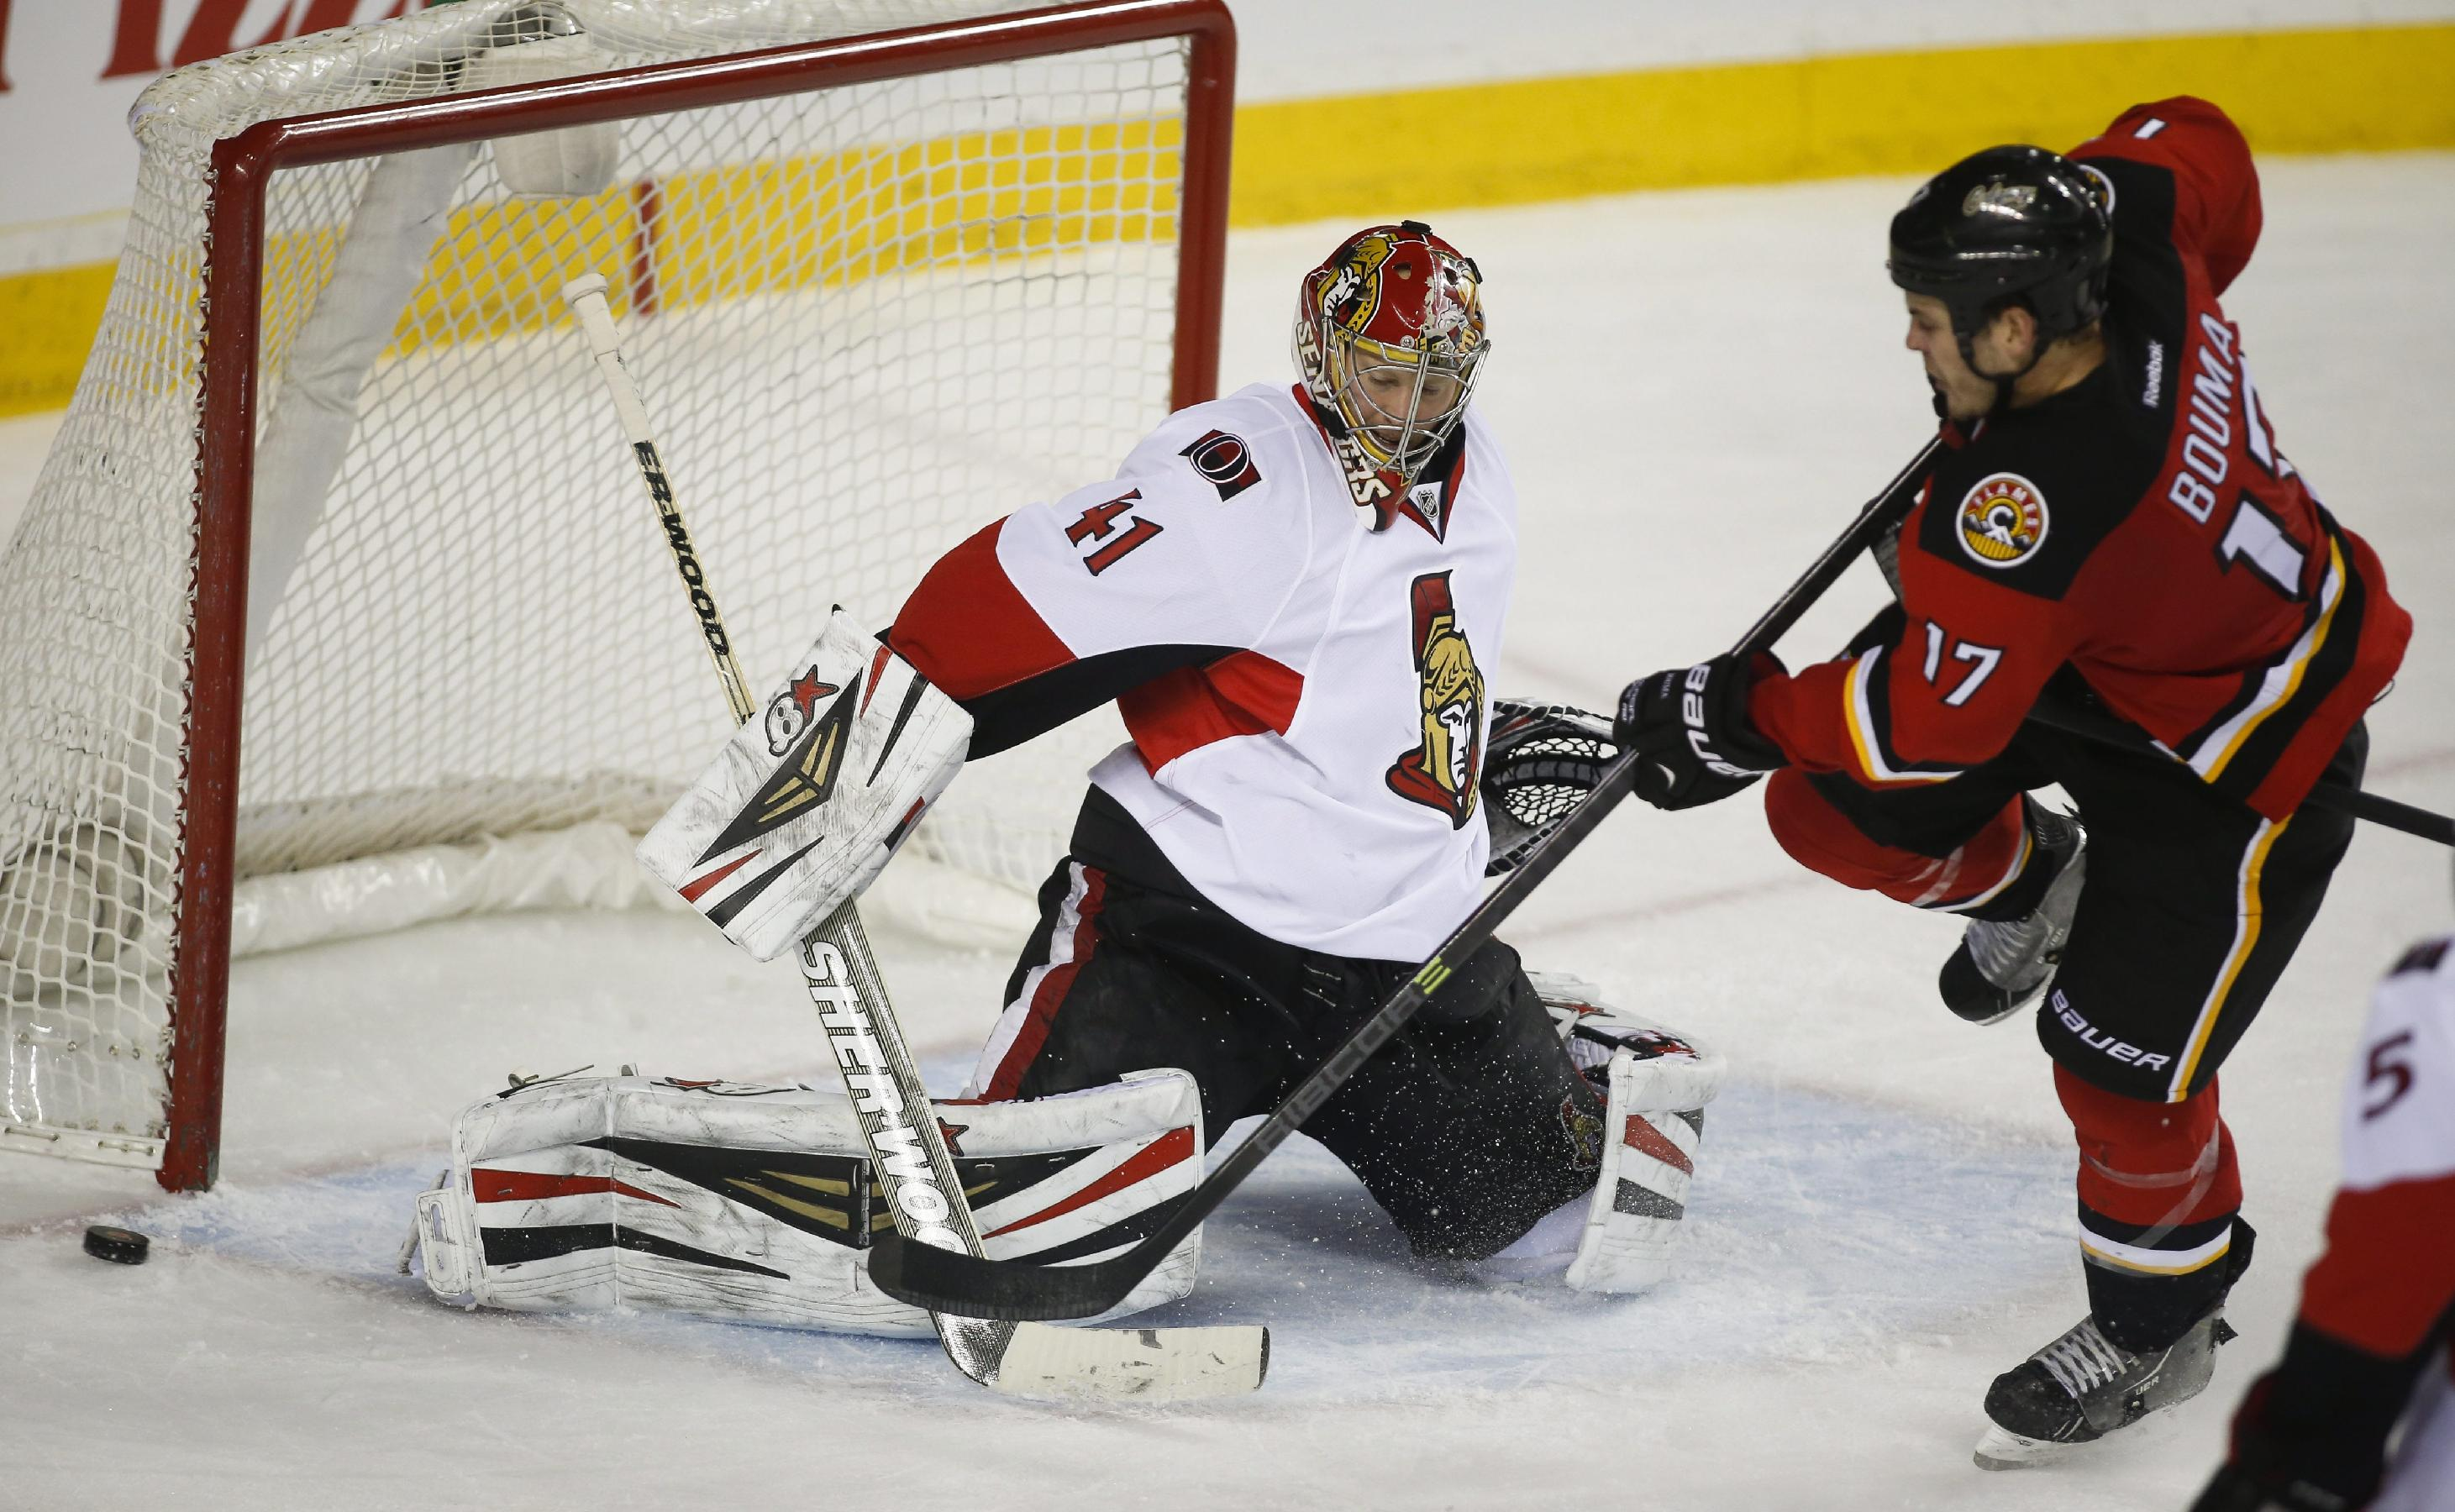 Ottawa Senators goalie Craig Anderson, left, kicks away a shot from Calgary Flames' Lance Bouma during third period NHL hockey action in Calgary, Alberta, Wednesday, March 5, 2014. The Calgary Flames beat the Ottawa Senators 4-1